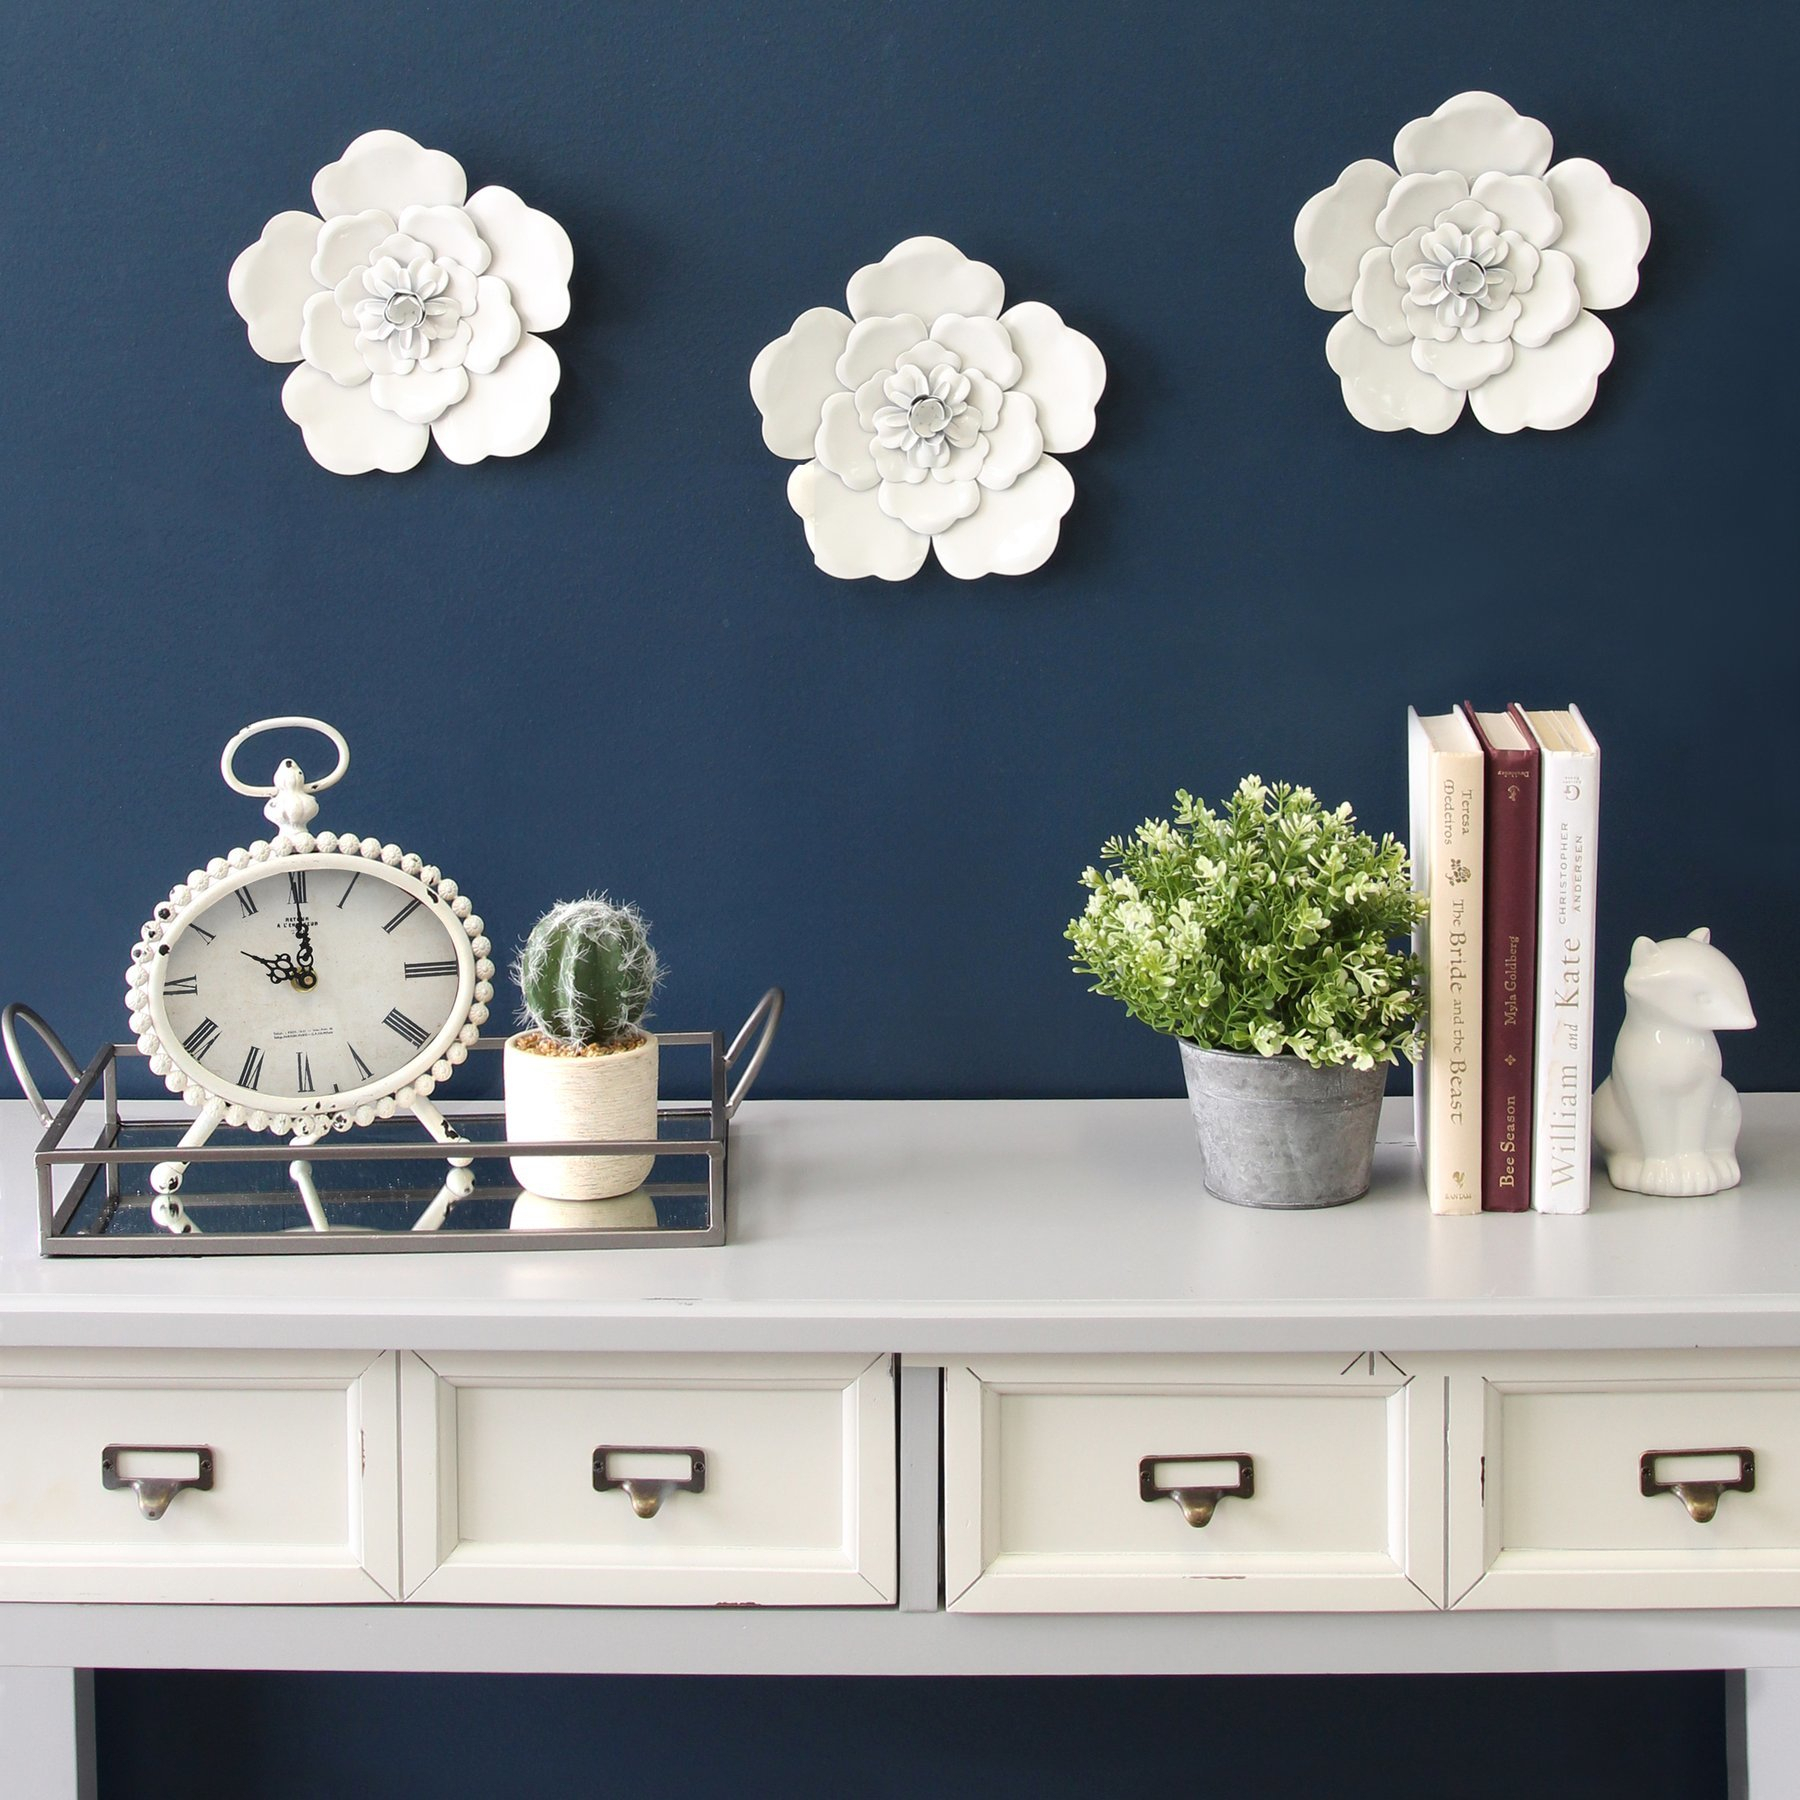 Metal Flower Wall Art | Wayfair Intended For Metal Flower Wall Decor (Set Of 3) (View 20 of 30)